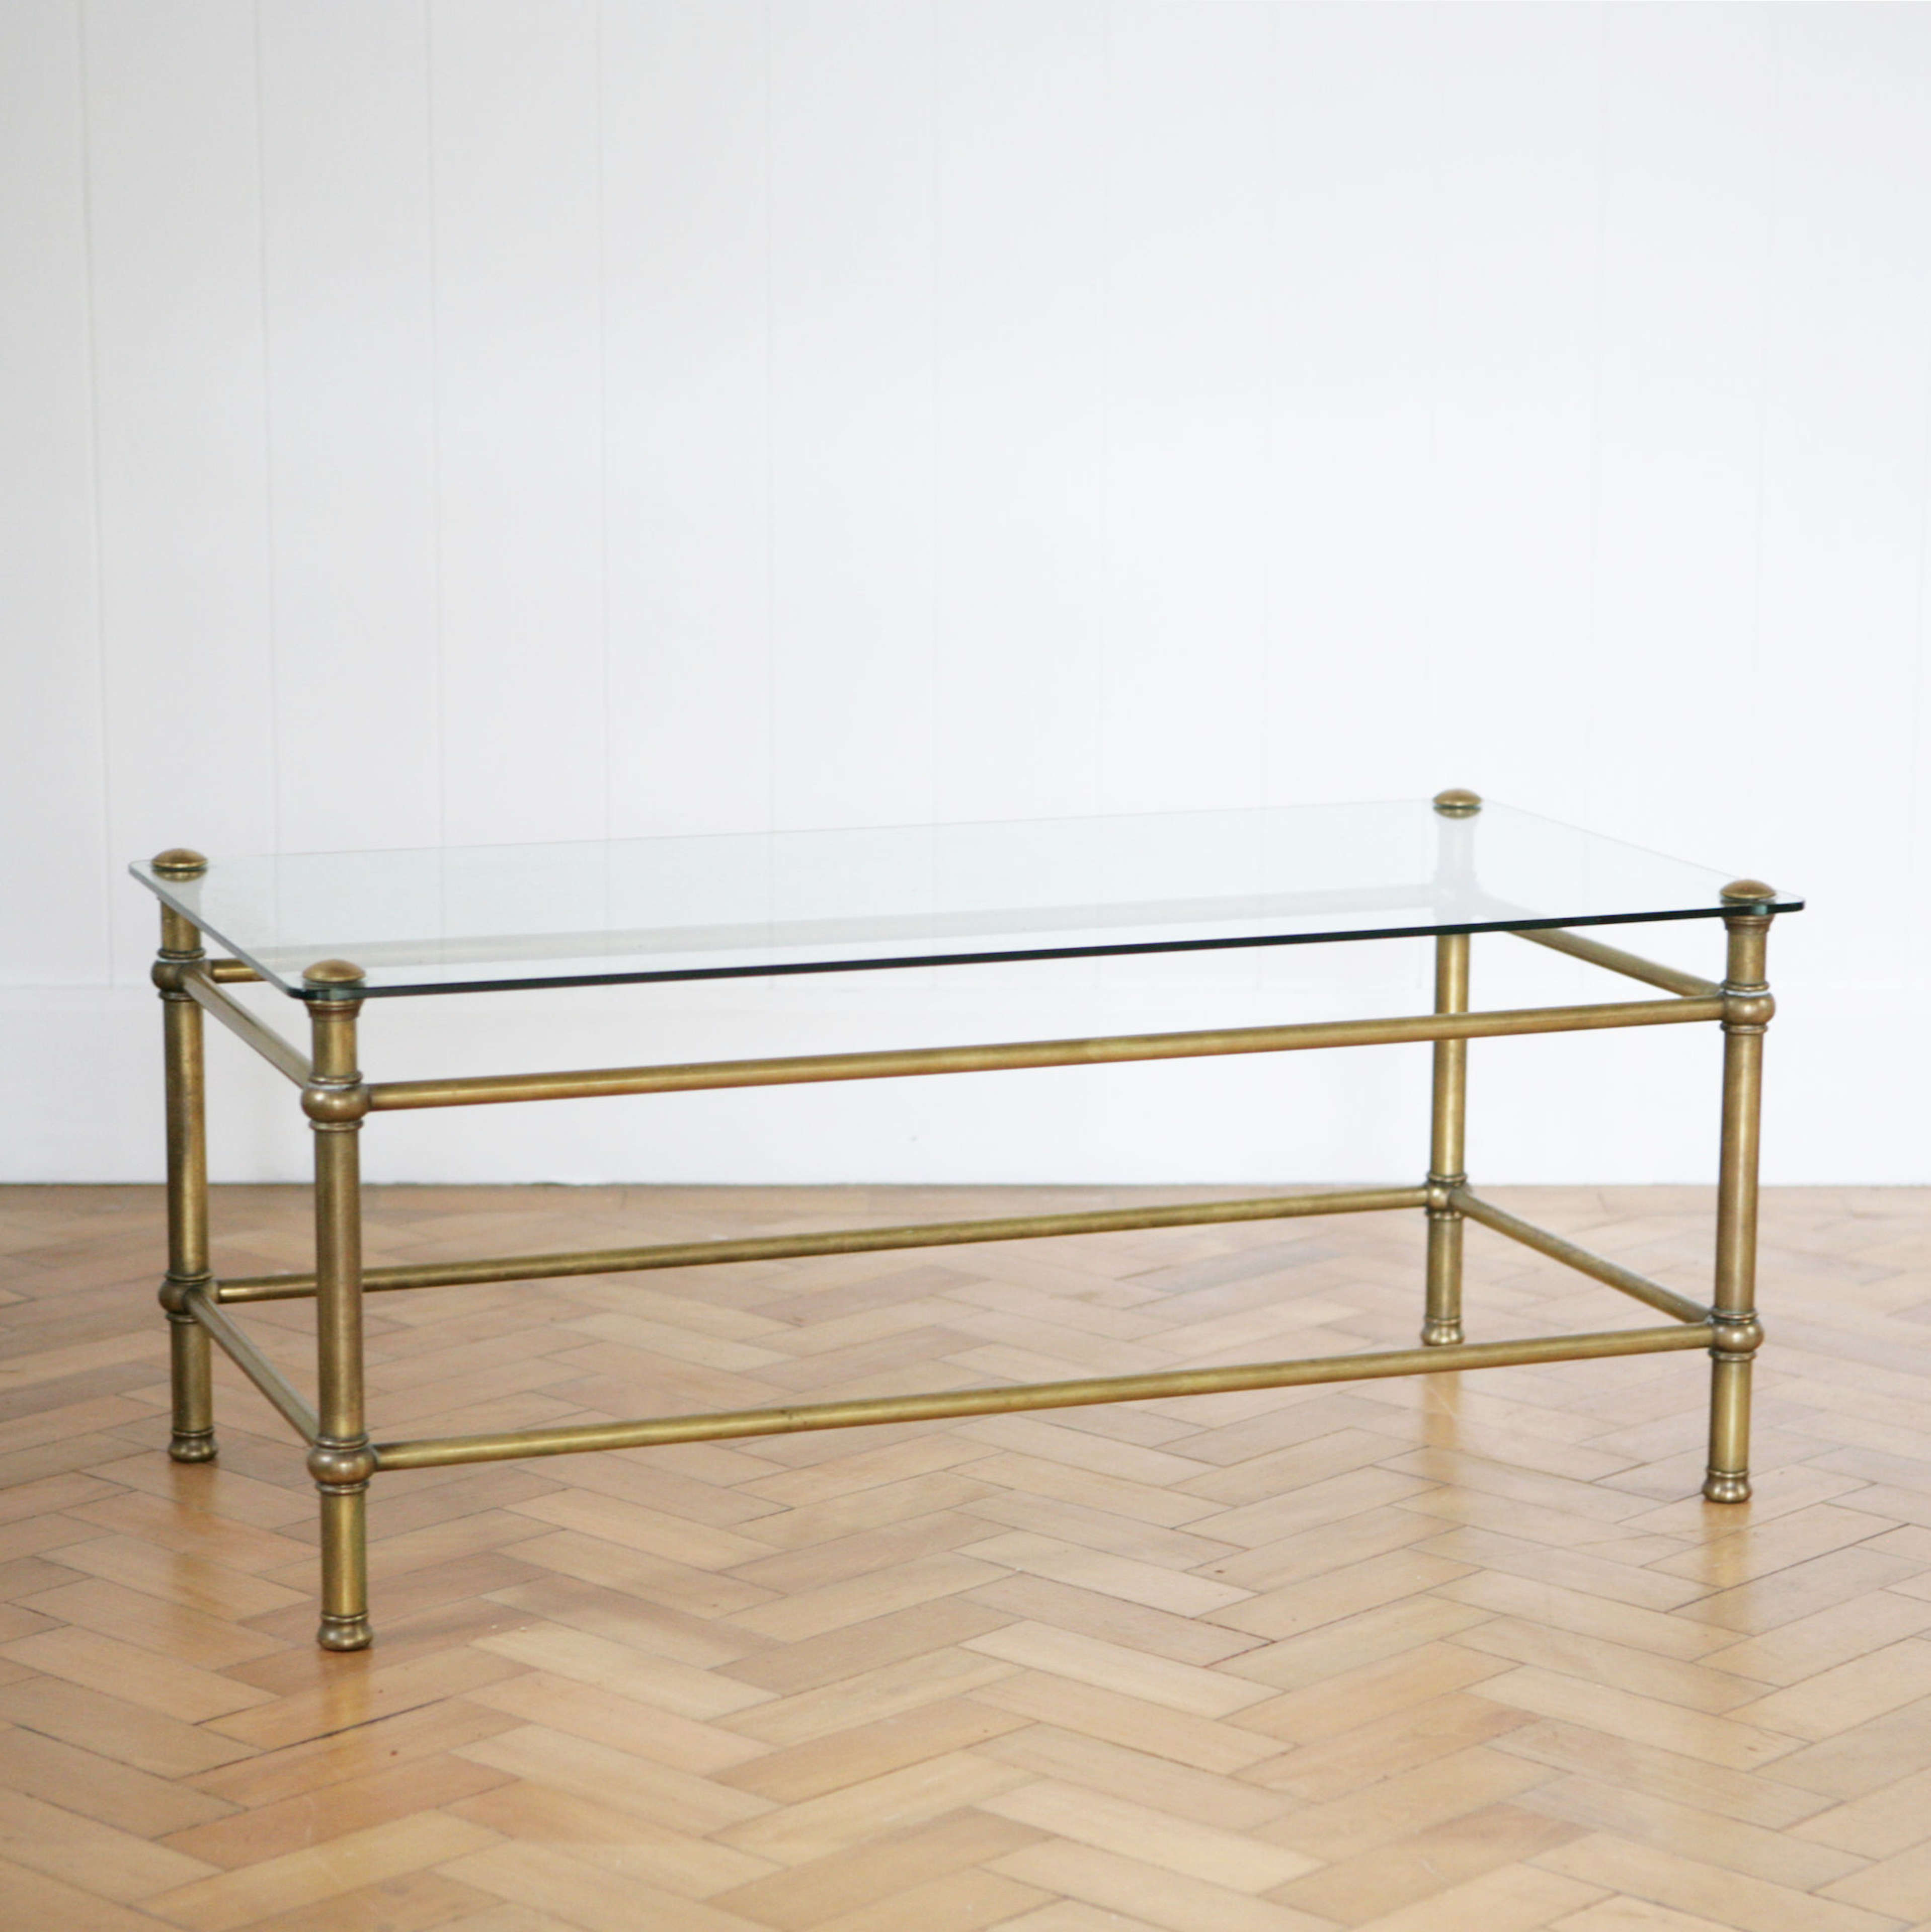 A brass and glass classic design coffee table.